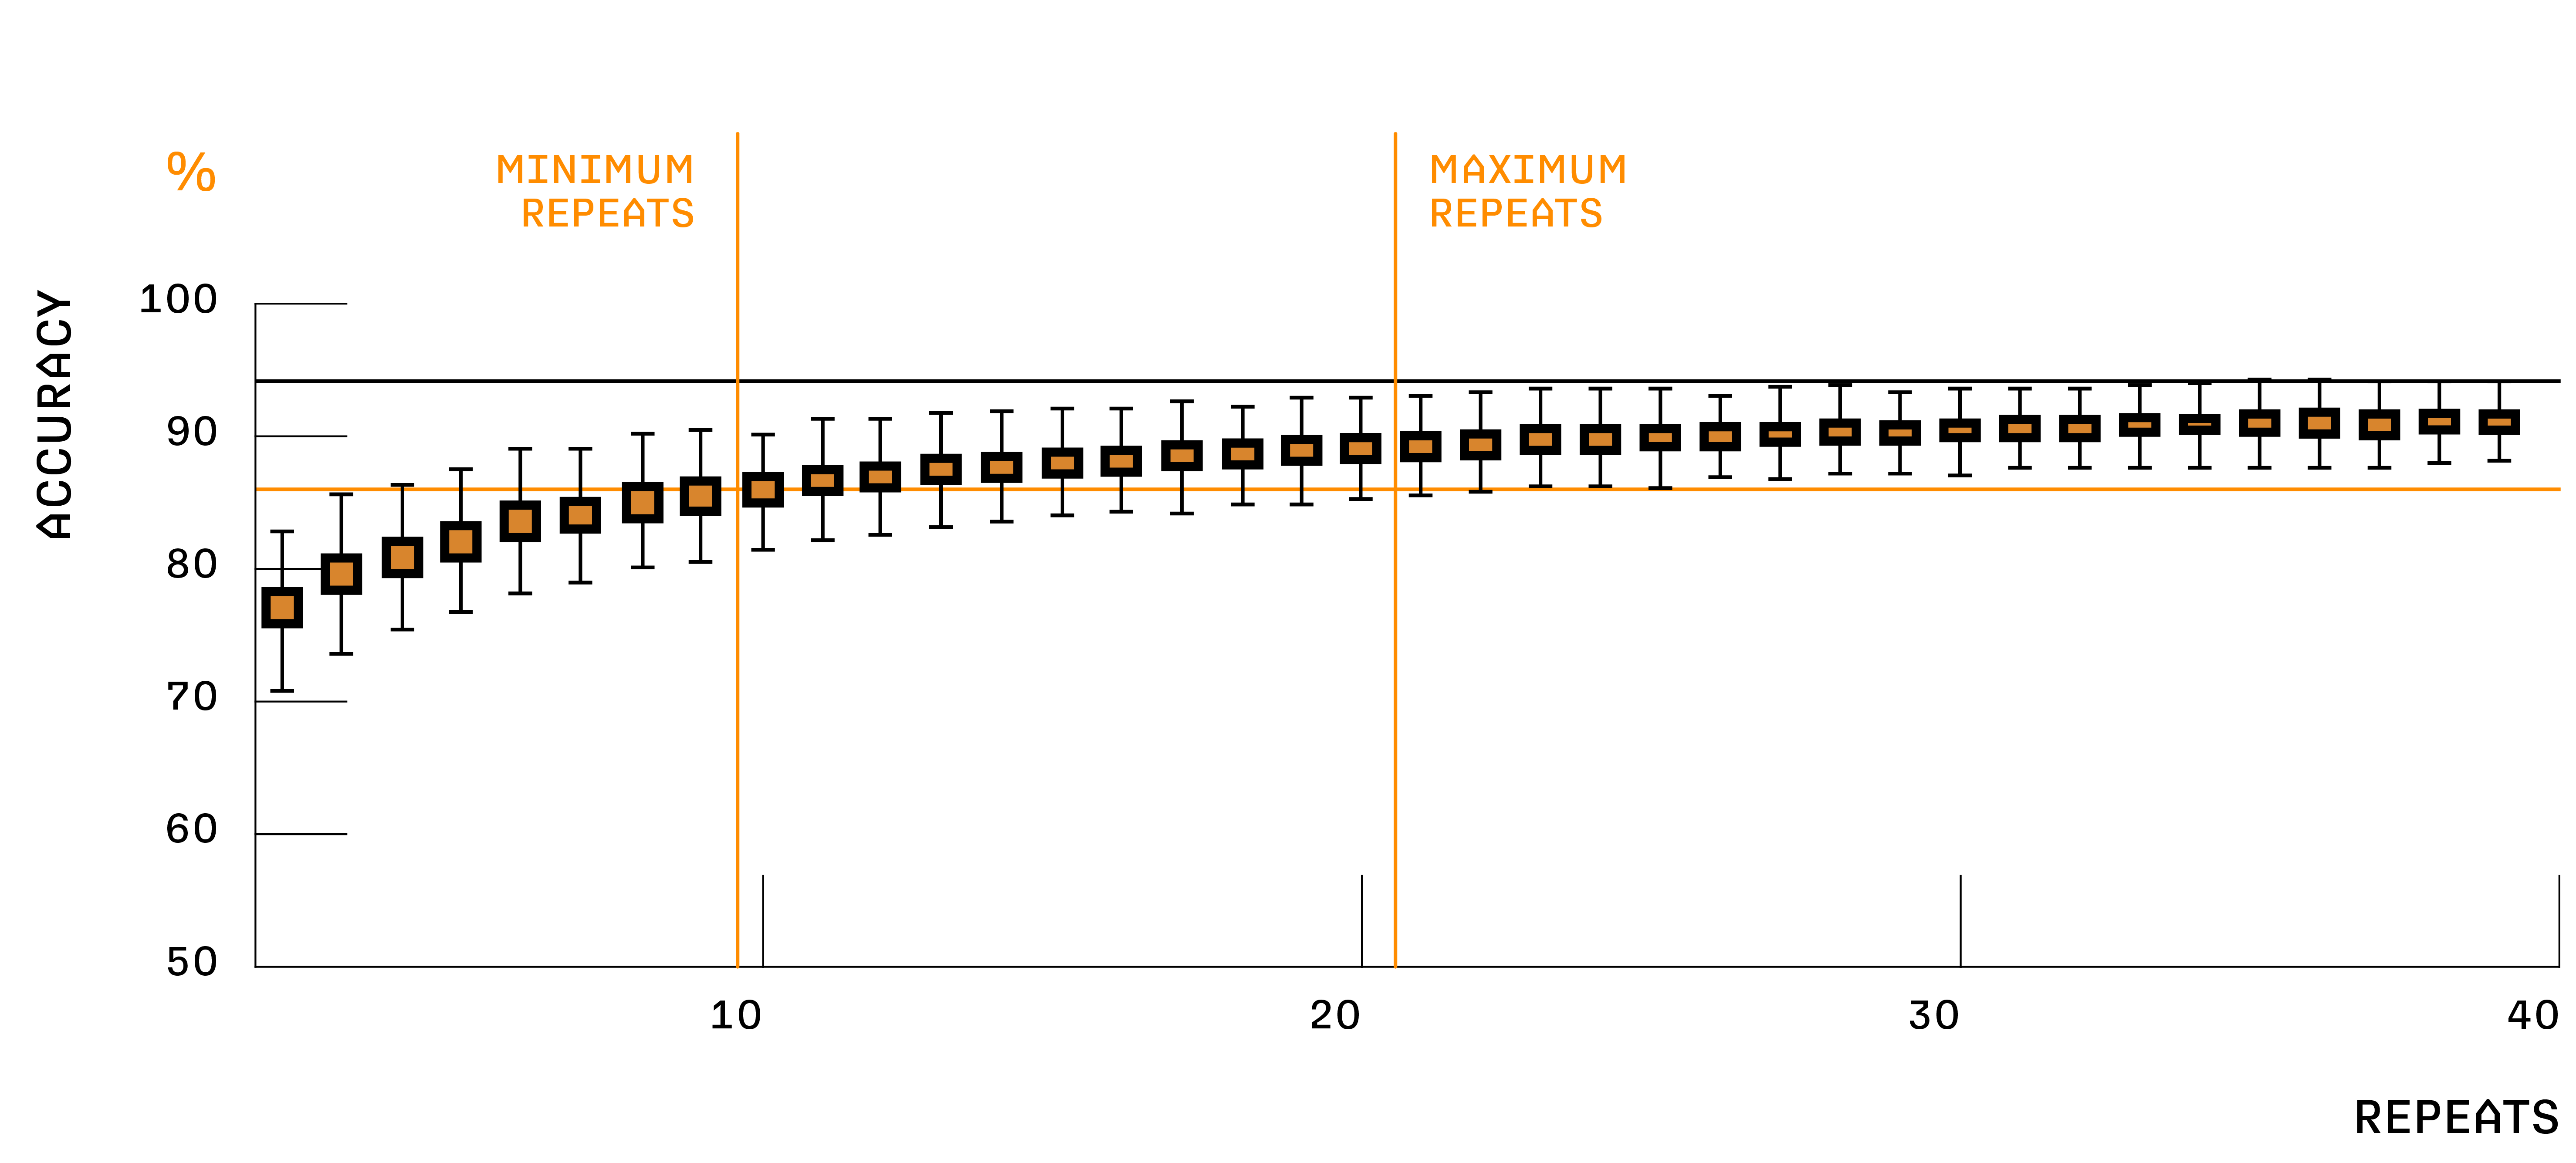 Quality Match confidence score graph based on number of repeats and accuracy percentage